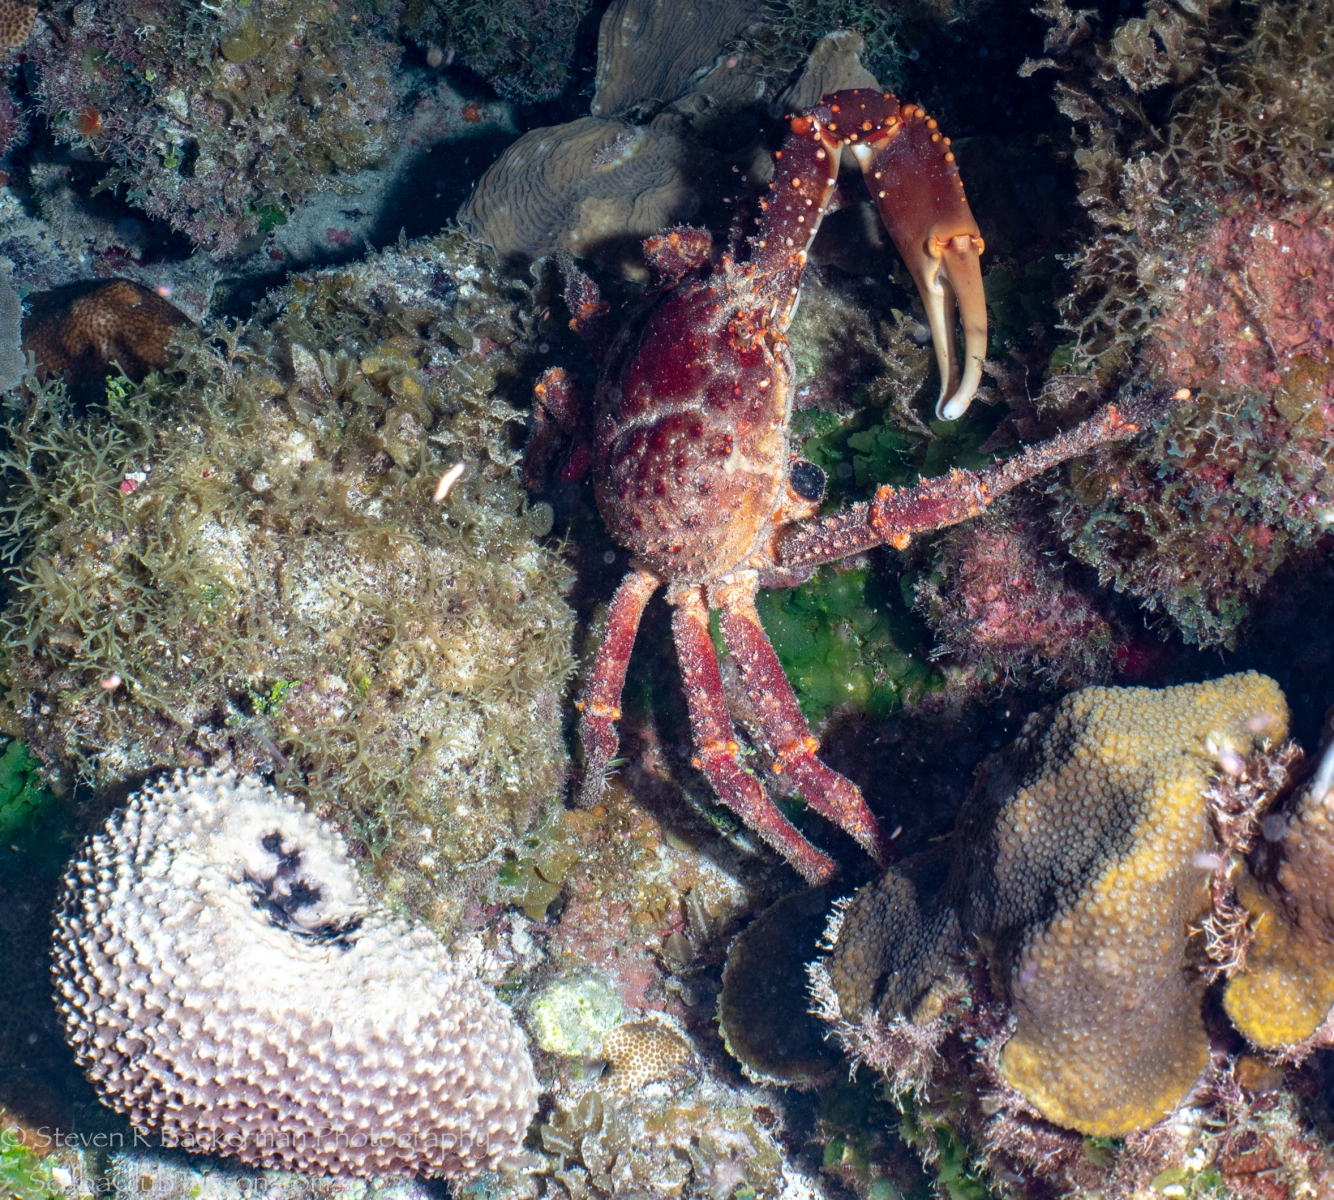 Channel-Clinging-Crab-4363